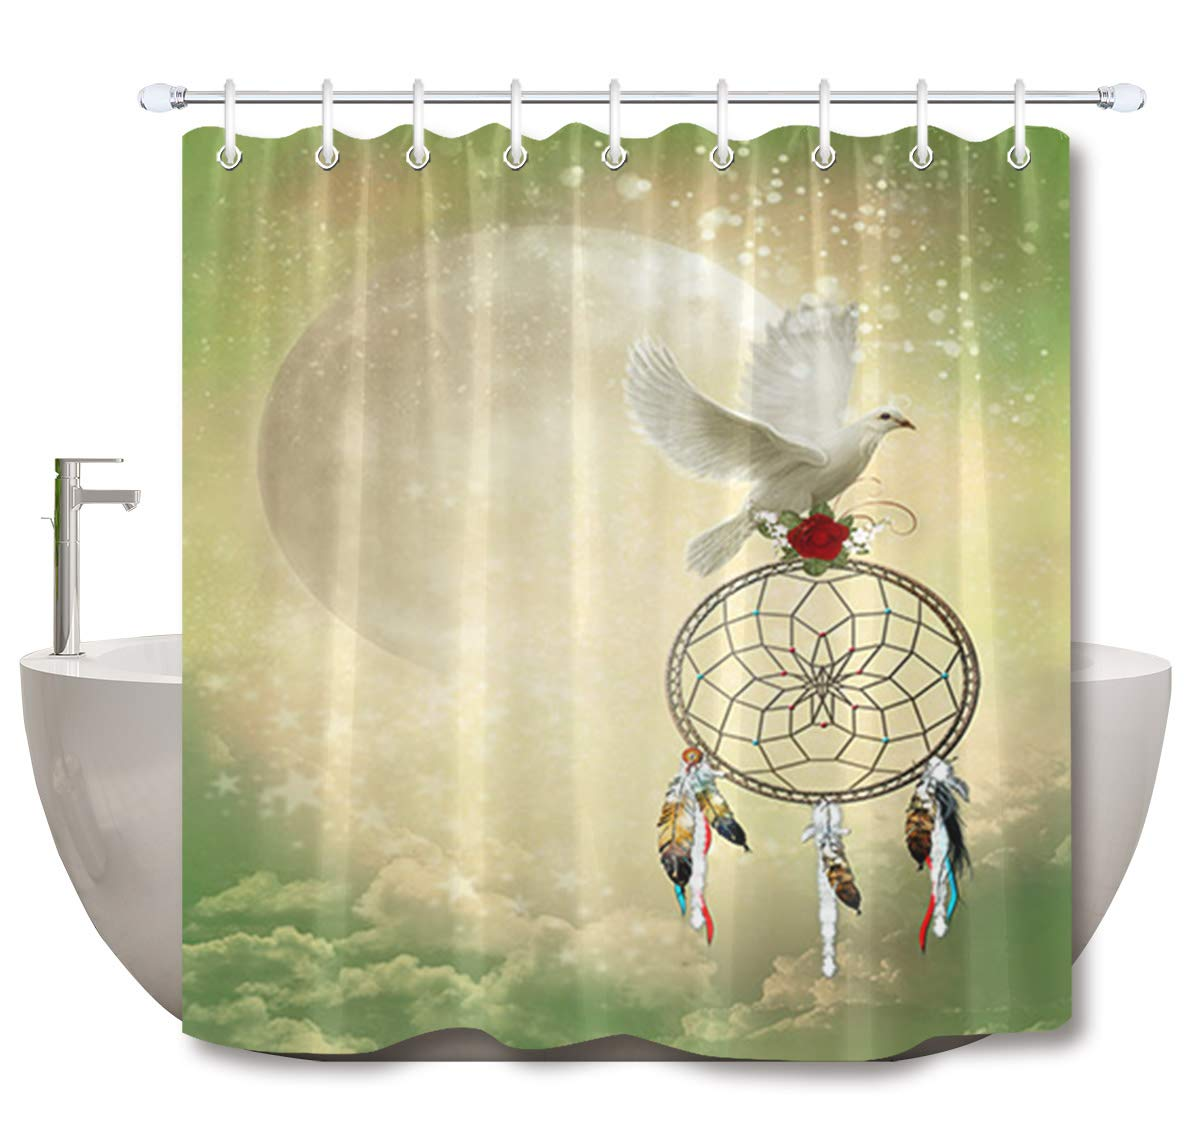 LB Dream Catcher Shower Curtain3D Printing White Pigeon With A Red Rose On Dreamcatcher Funny Tribe Bathroom Decor72x72 Inch Waterproof Anti Mildew Fabric